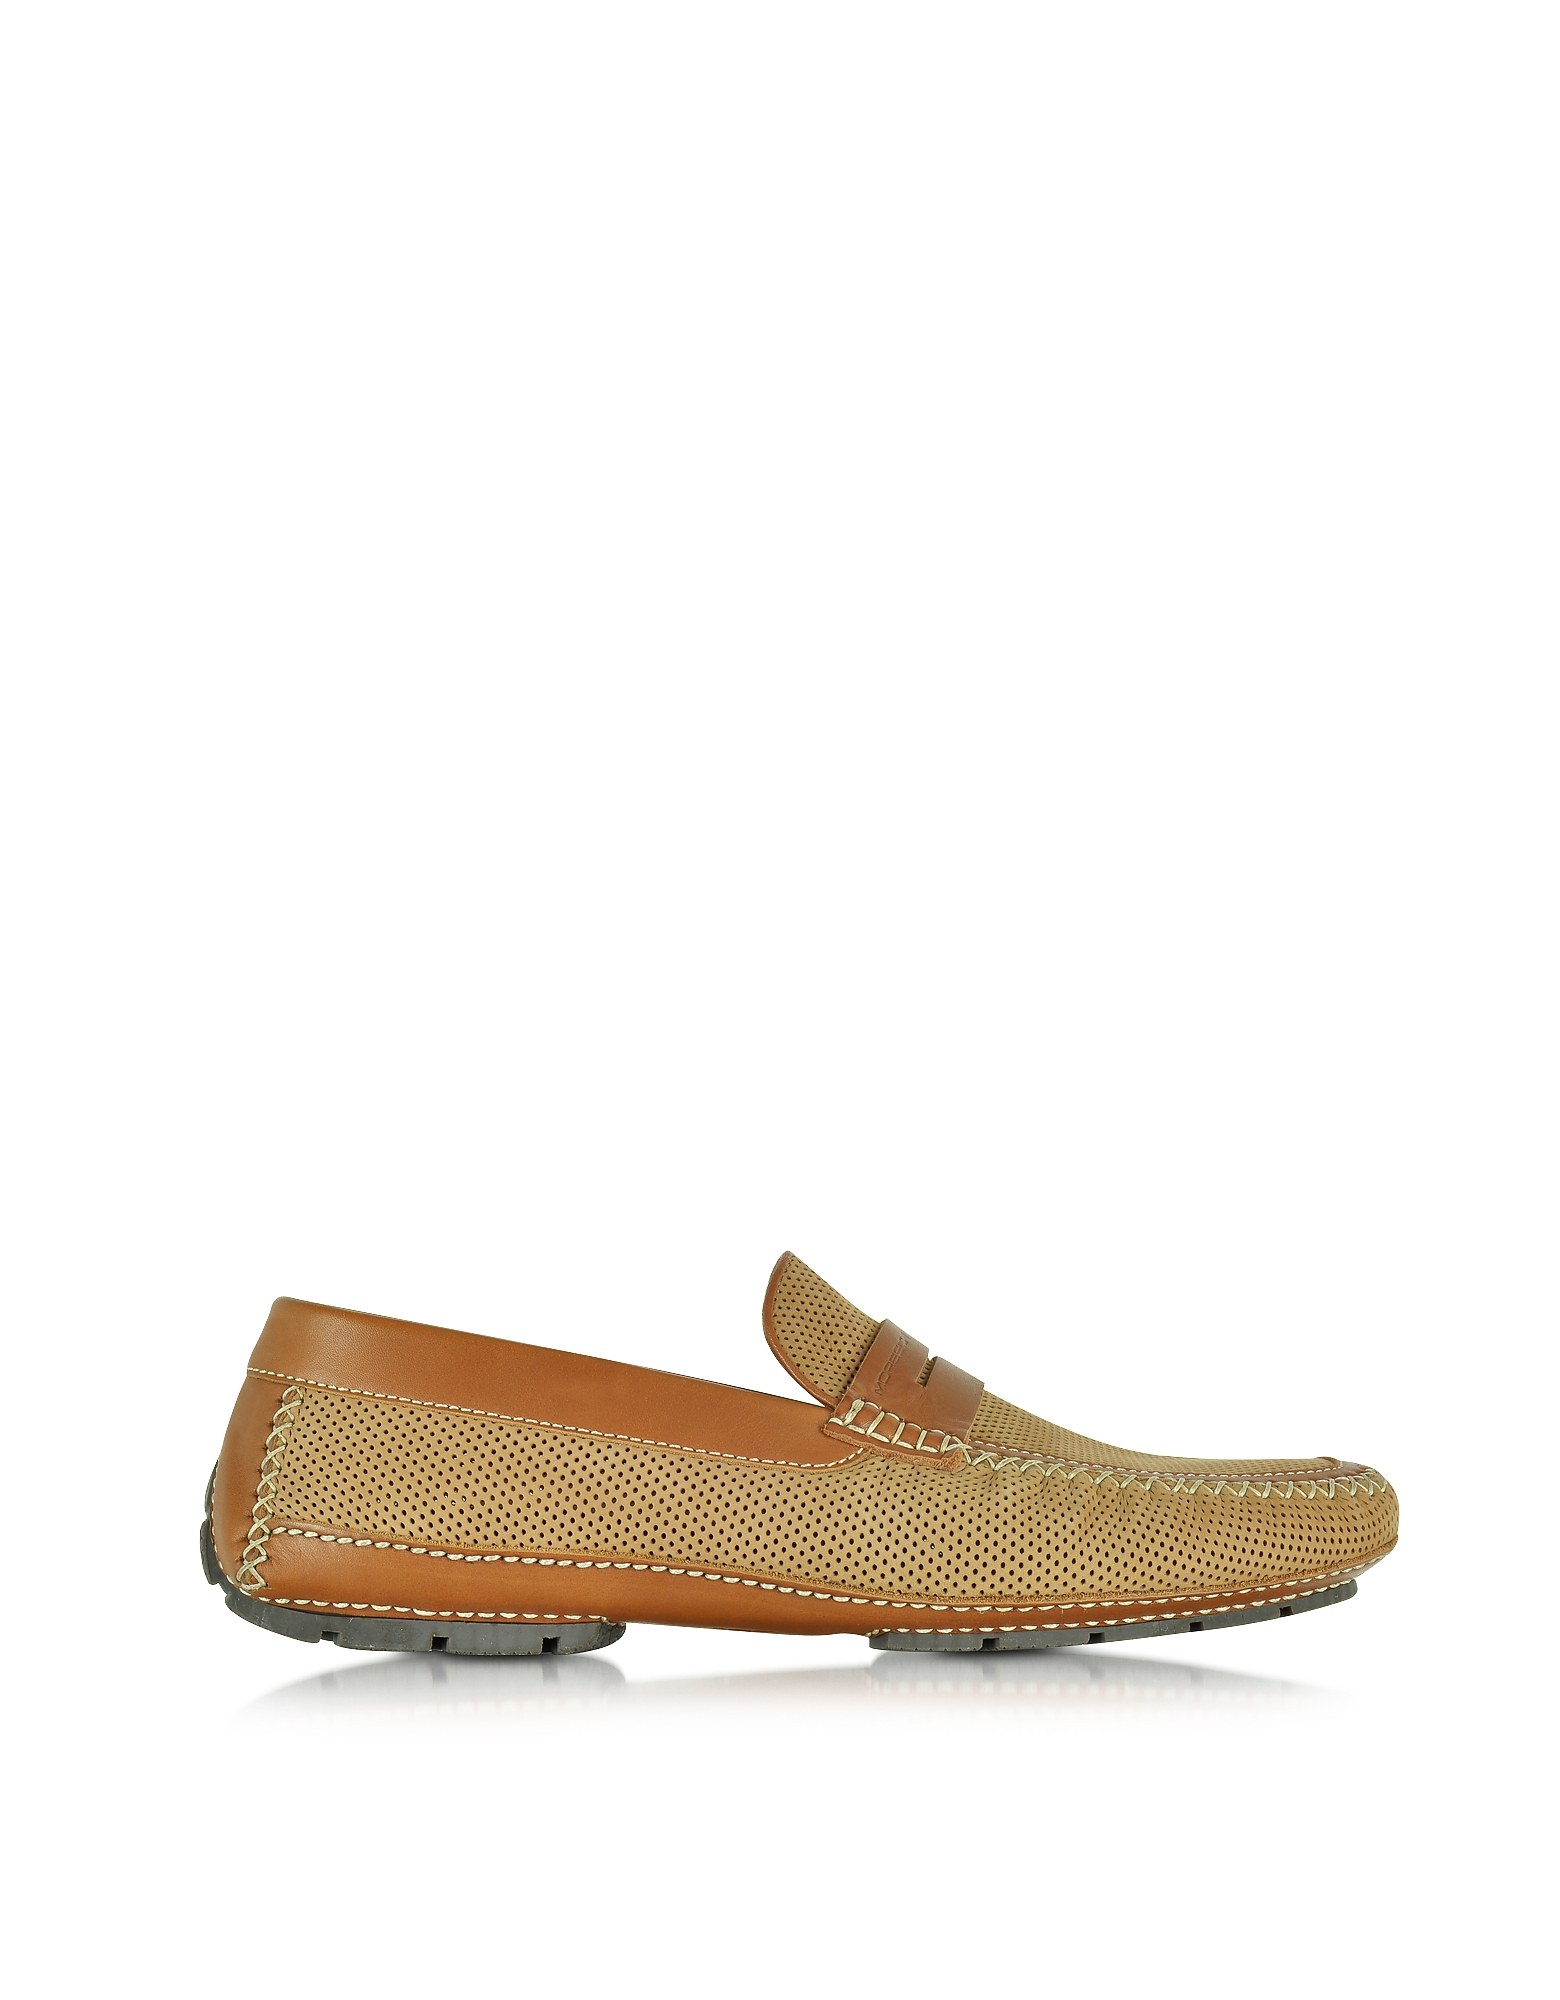 Moreschi Shoes, Bahamas Tan Perforated Nubuck Driver Shoes w/Rubber Sole